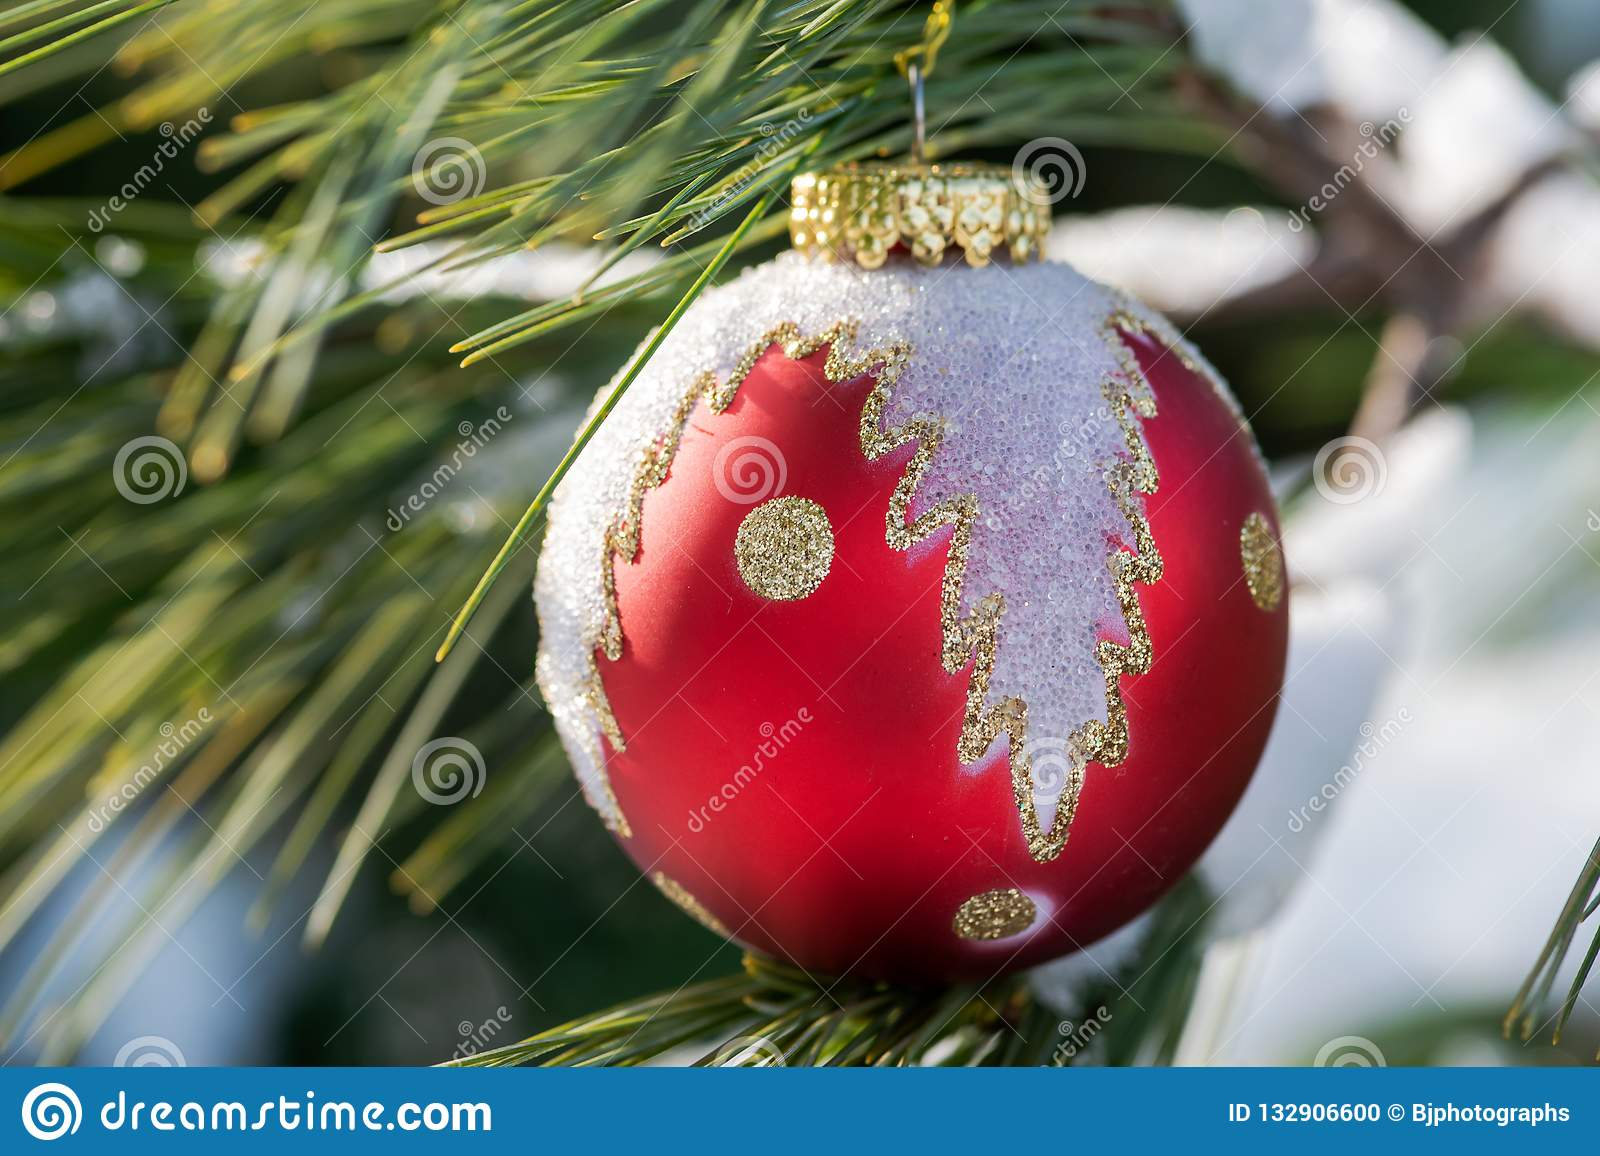 Winter Holiday Decoration Concept Christmas Tree Ball And Frozen